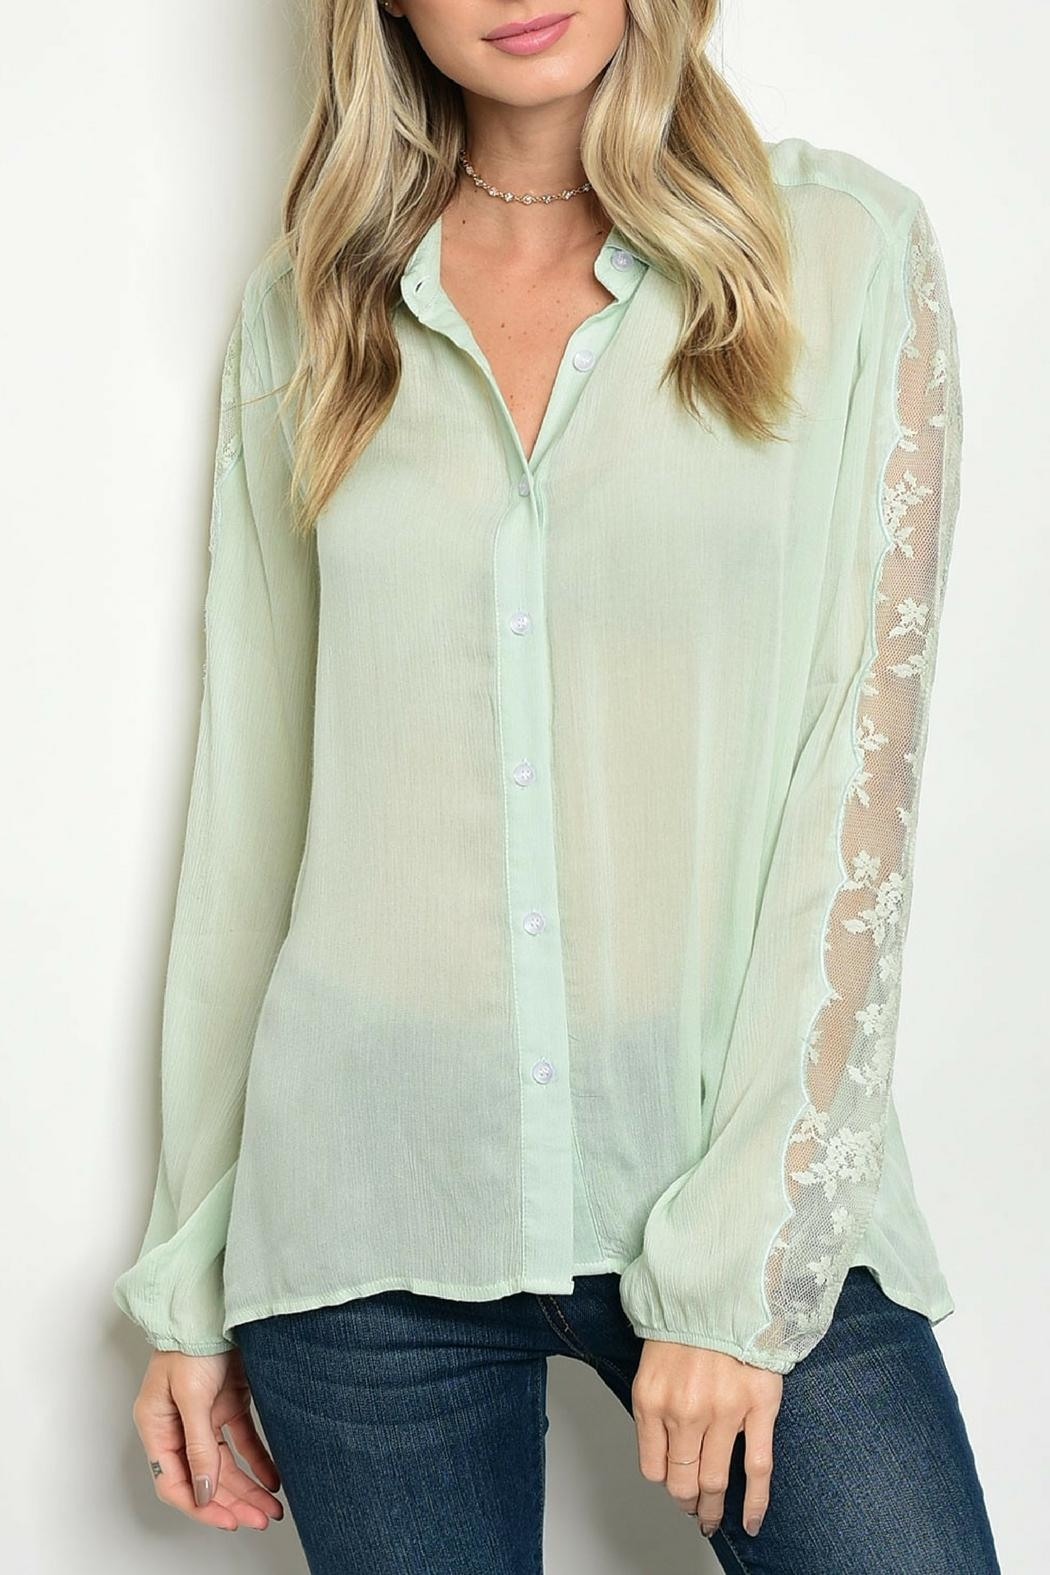 Tassels N Lace Mint Lace Top - Main Image